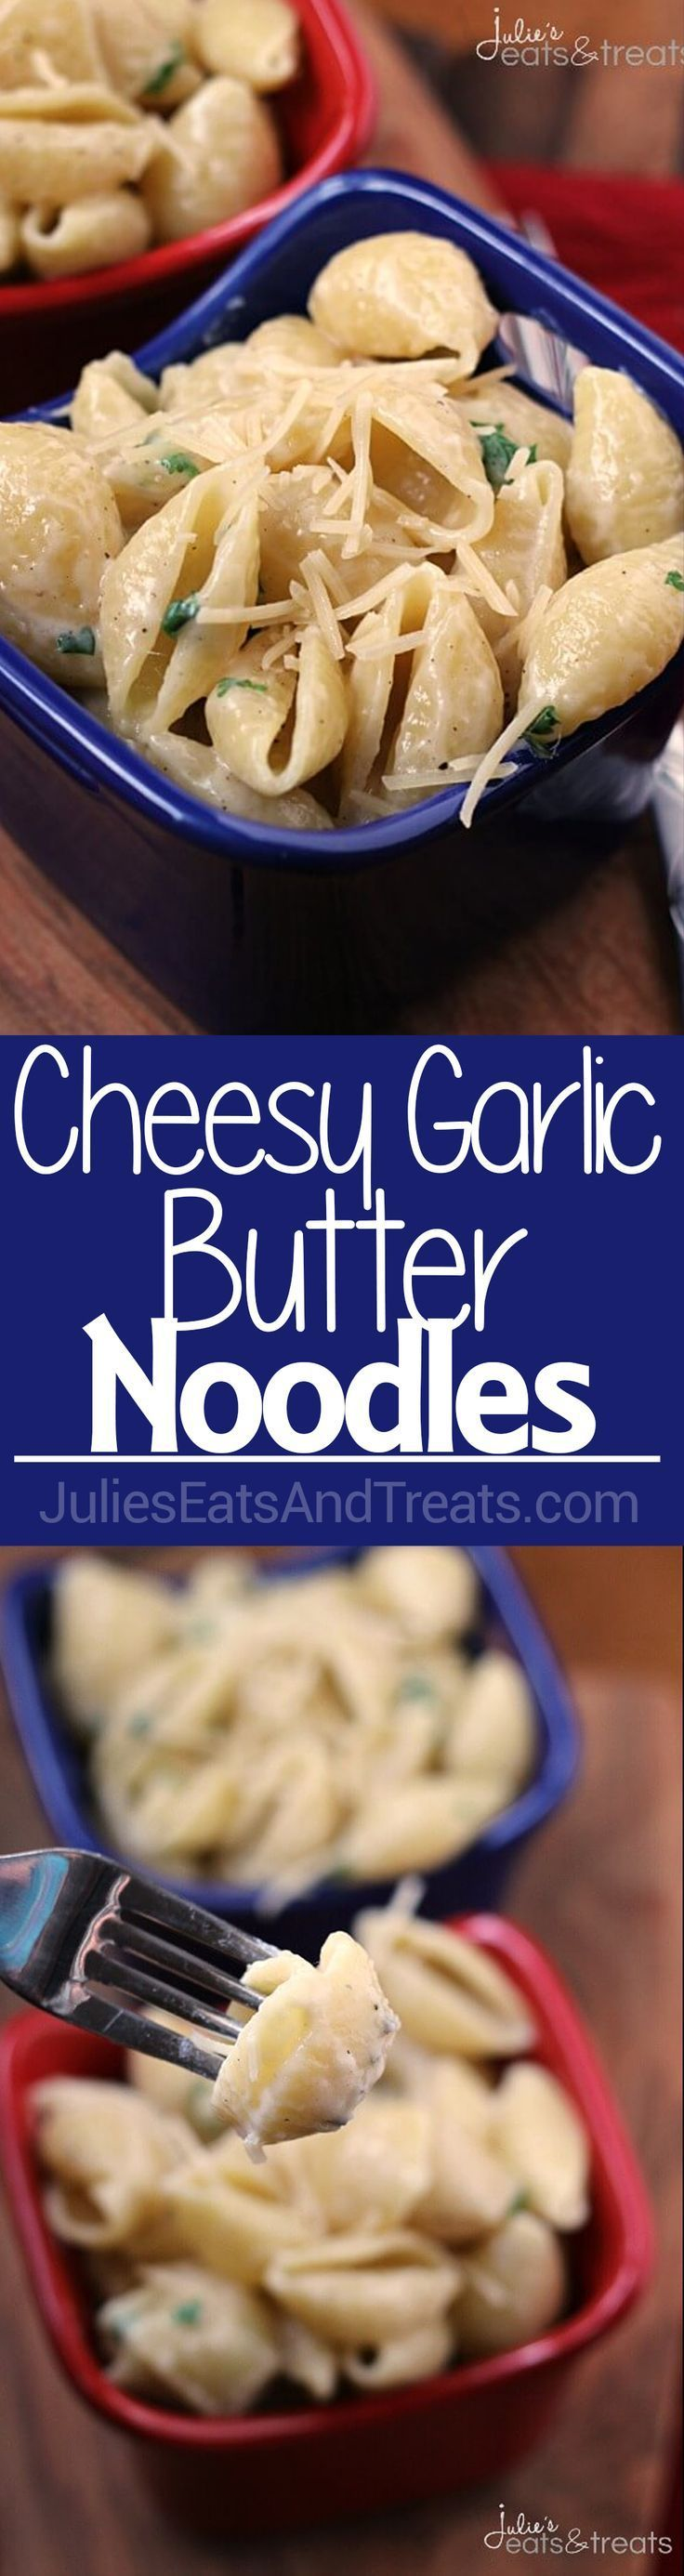 Cheesy Garlic Butter Noodles ~ Quick and Easy Side Dish for a Busy Night! Pasta Loaded with Garlic, Butter & Cheese! via /julieseats/